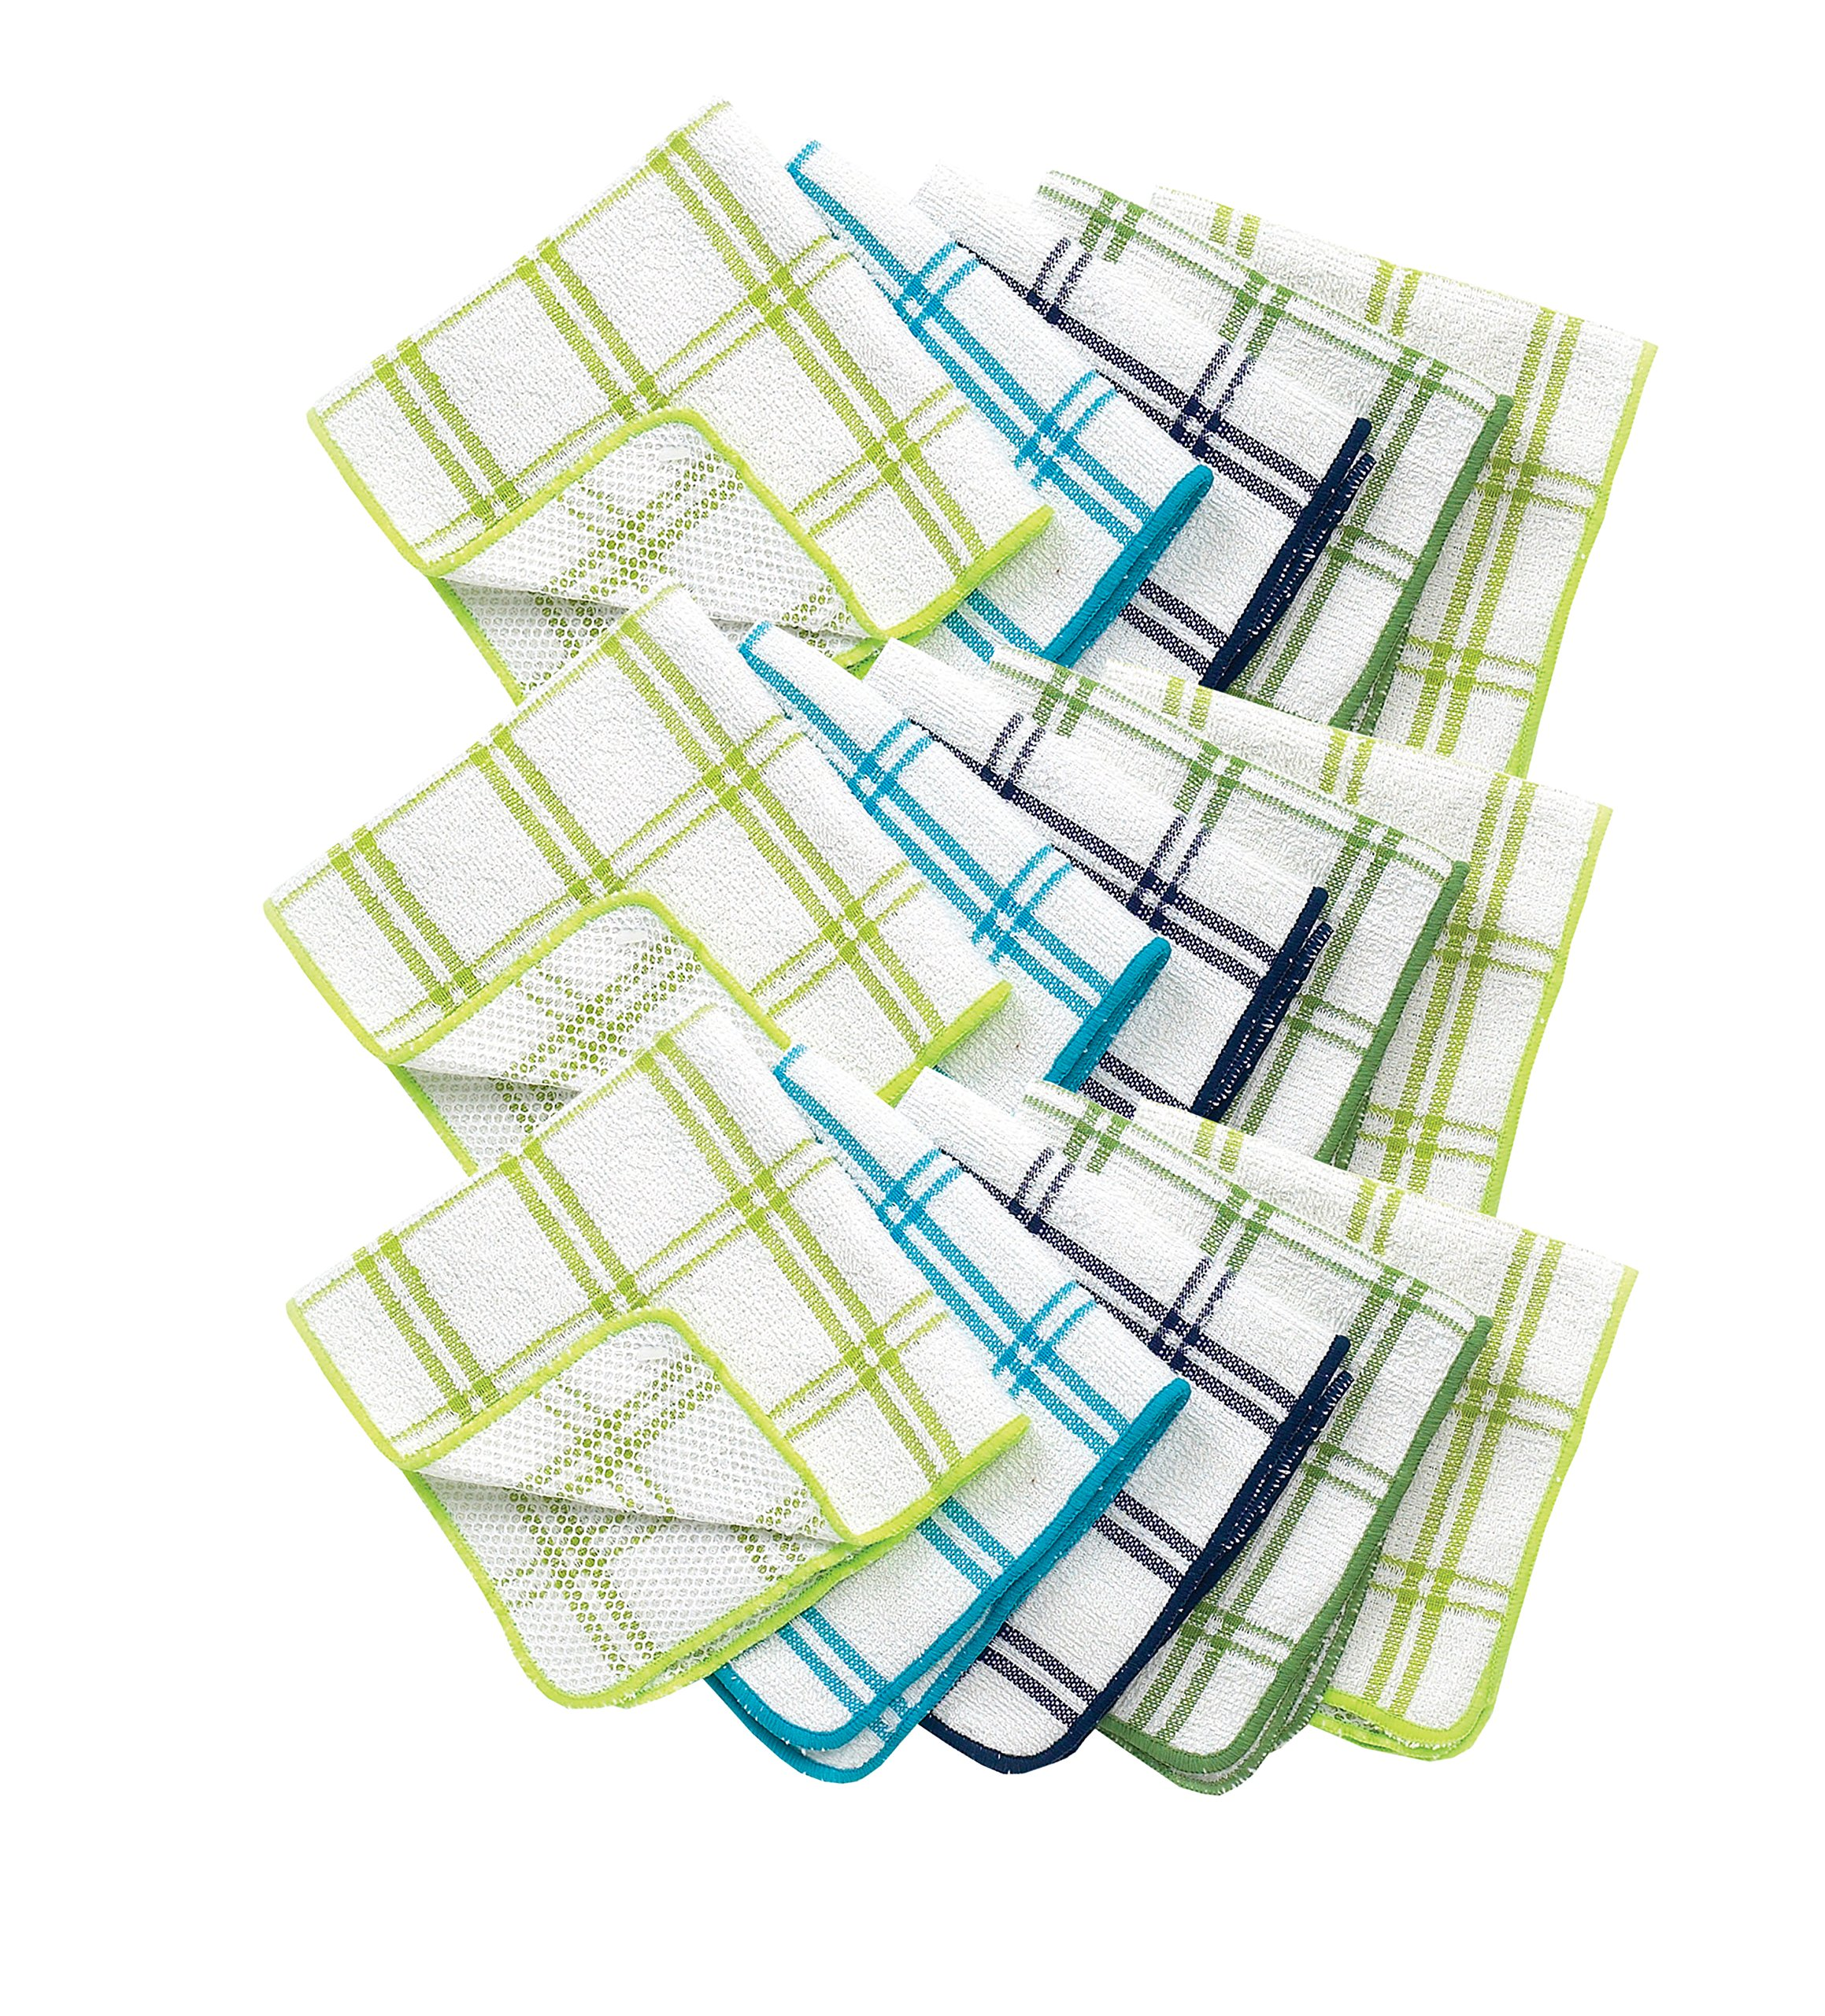 Ritz 100% Cotton 12-inch x 12-inch Kitchen Dish Towel, Gentle Cleaning Wash Cloth with Poly Scour Side, Blue/Green, 5-Pack by Ritz